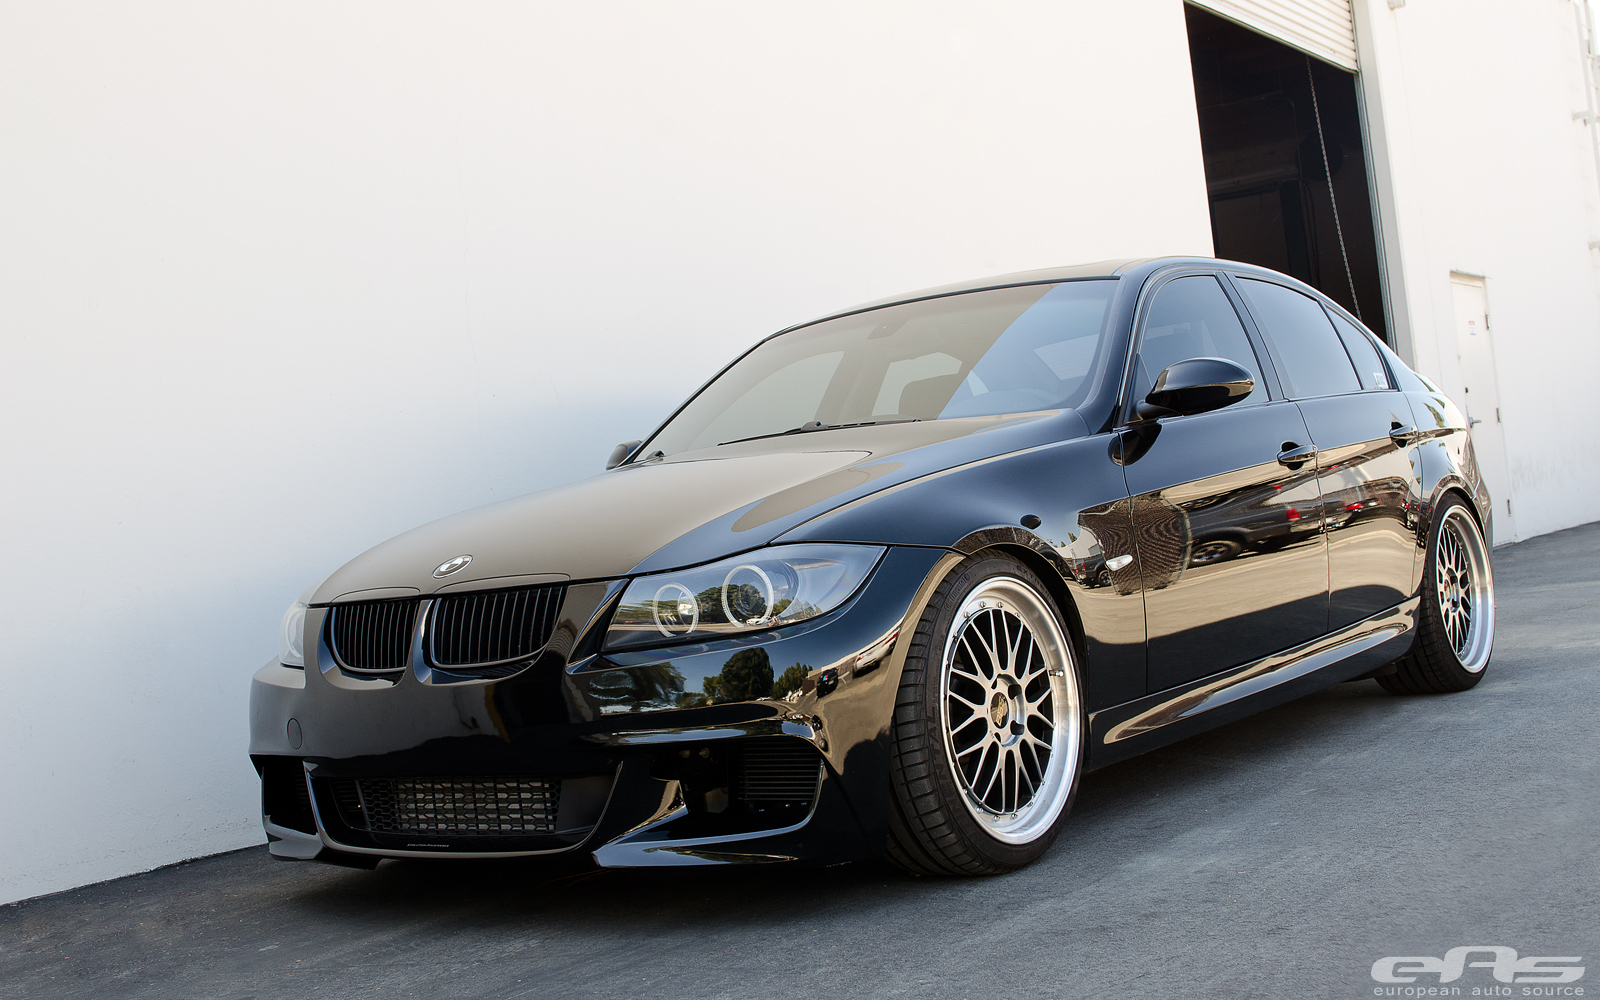 Highly Modified Black 335i Sedan | BMW Performance Parts & Services